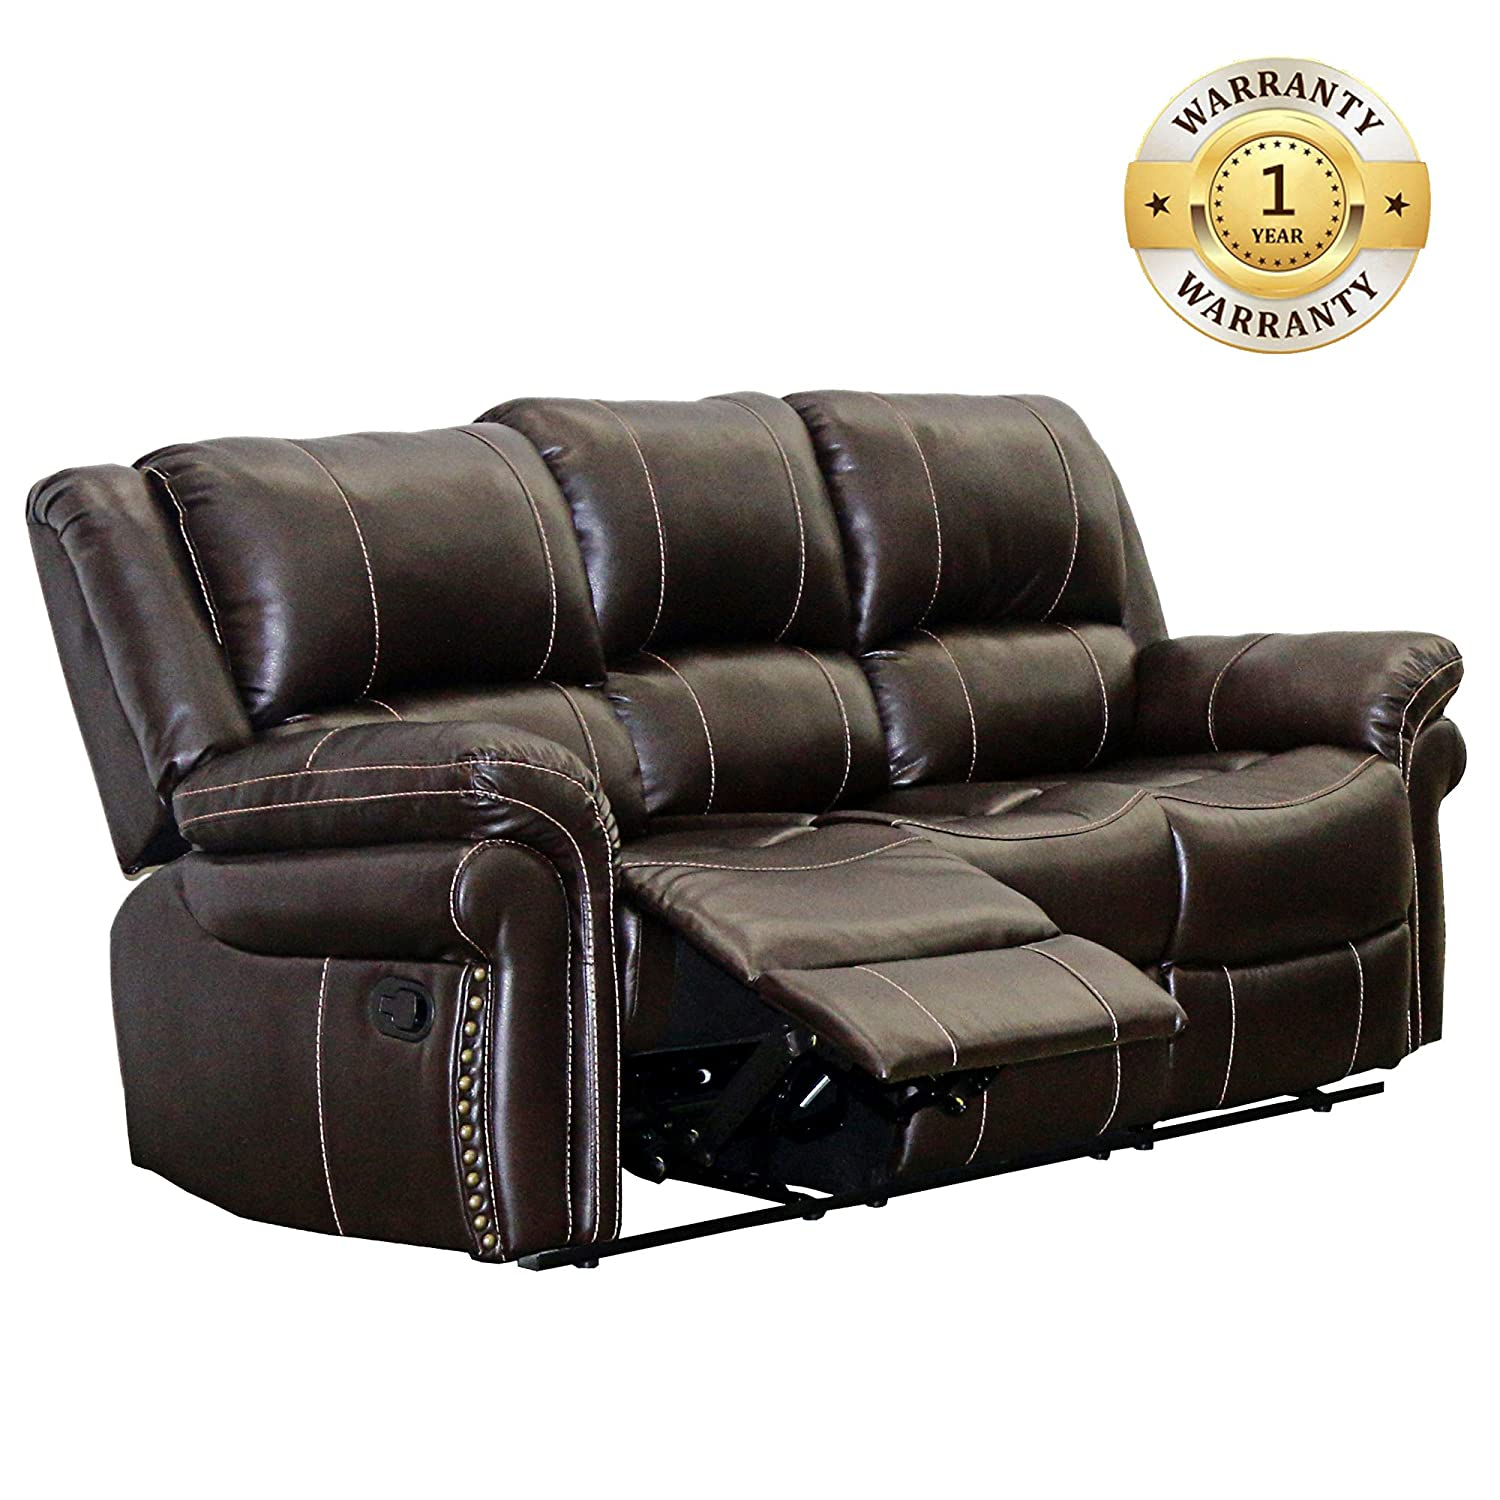 Terrific Windaze Double Recliner Sofa Classic 3 Seats Bonded Leather Reclining Couch For Living Room Brown Download Free Architecture Designs Grimeyleaguecom